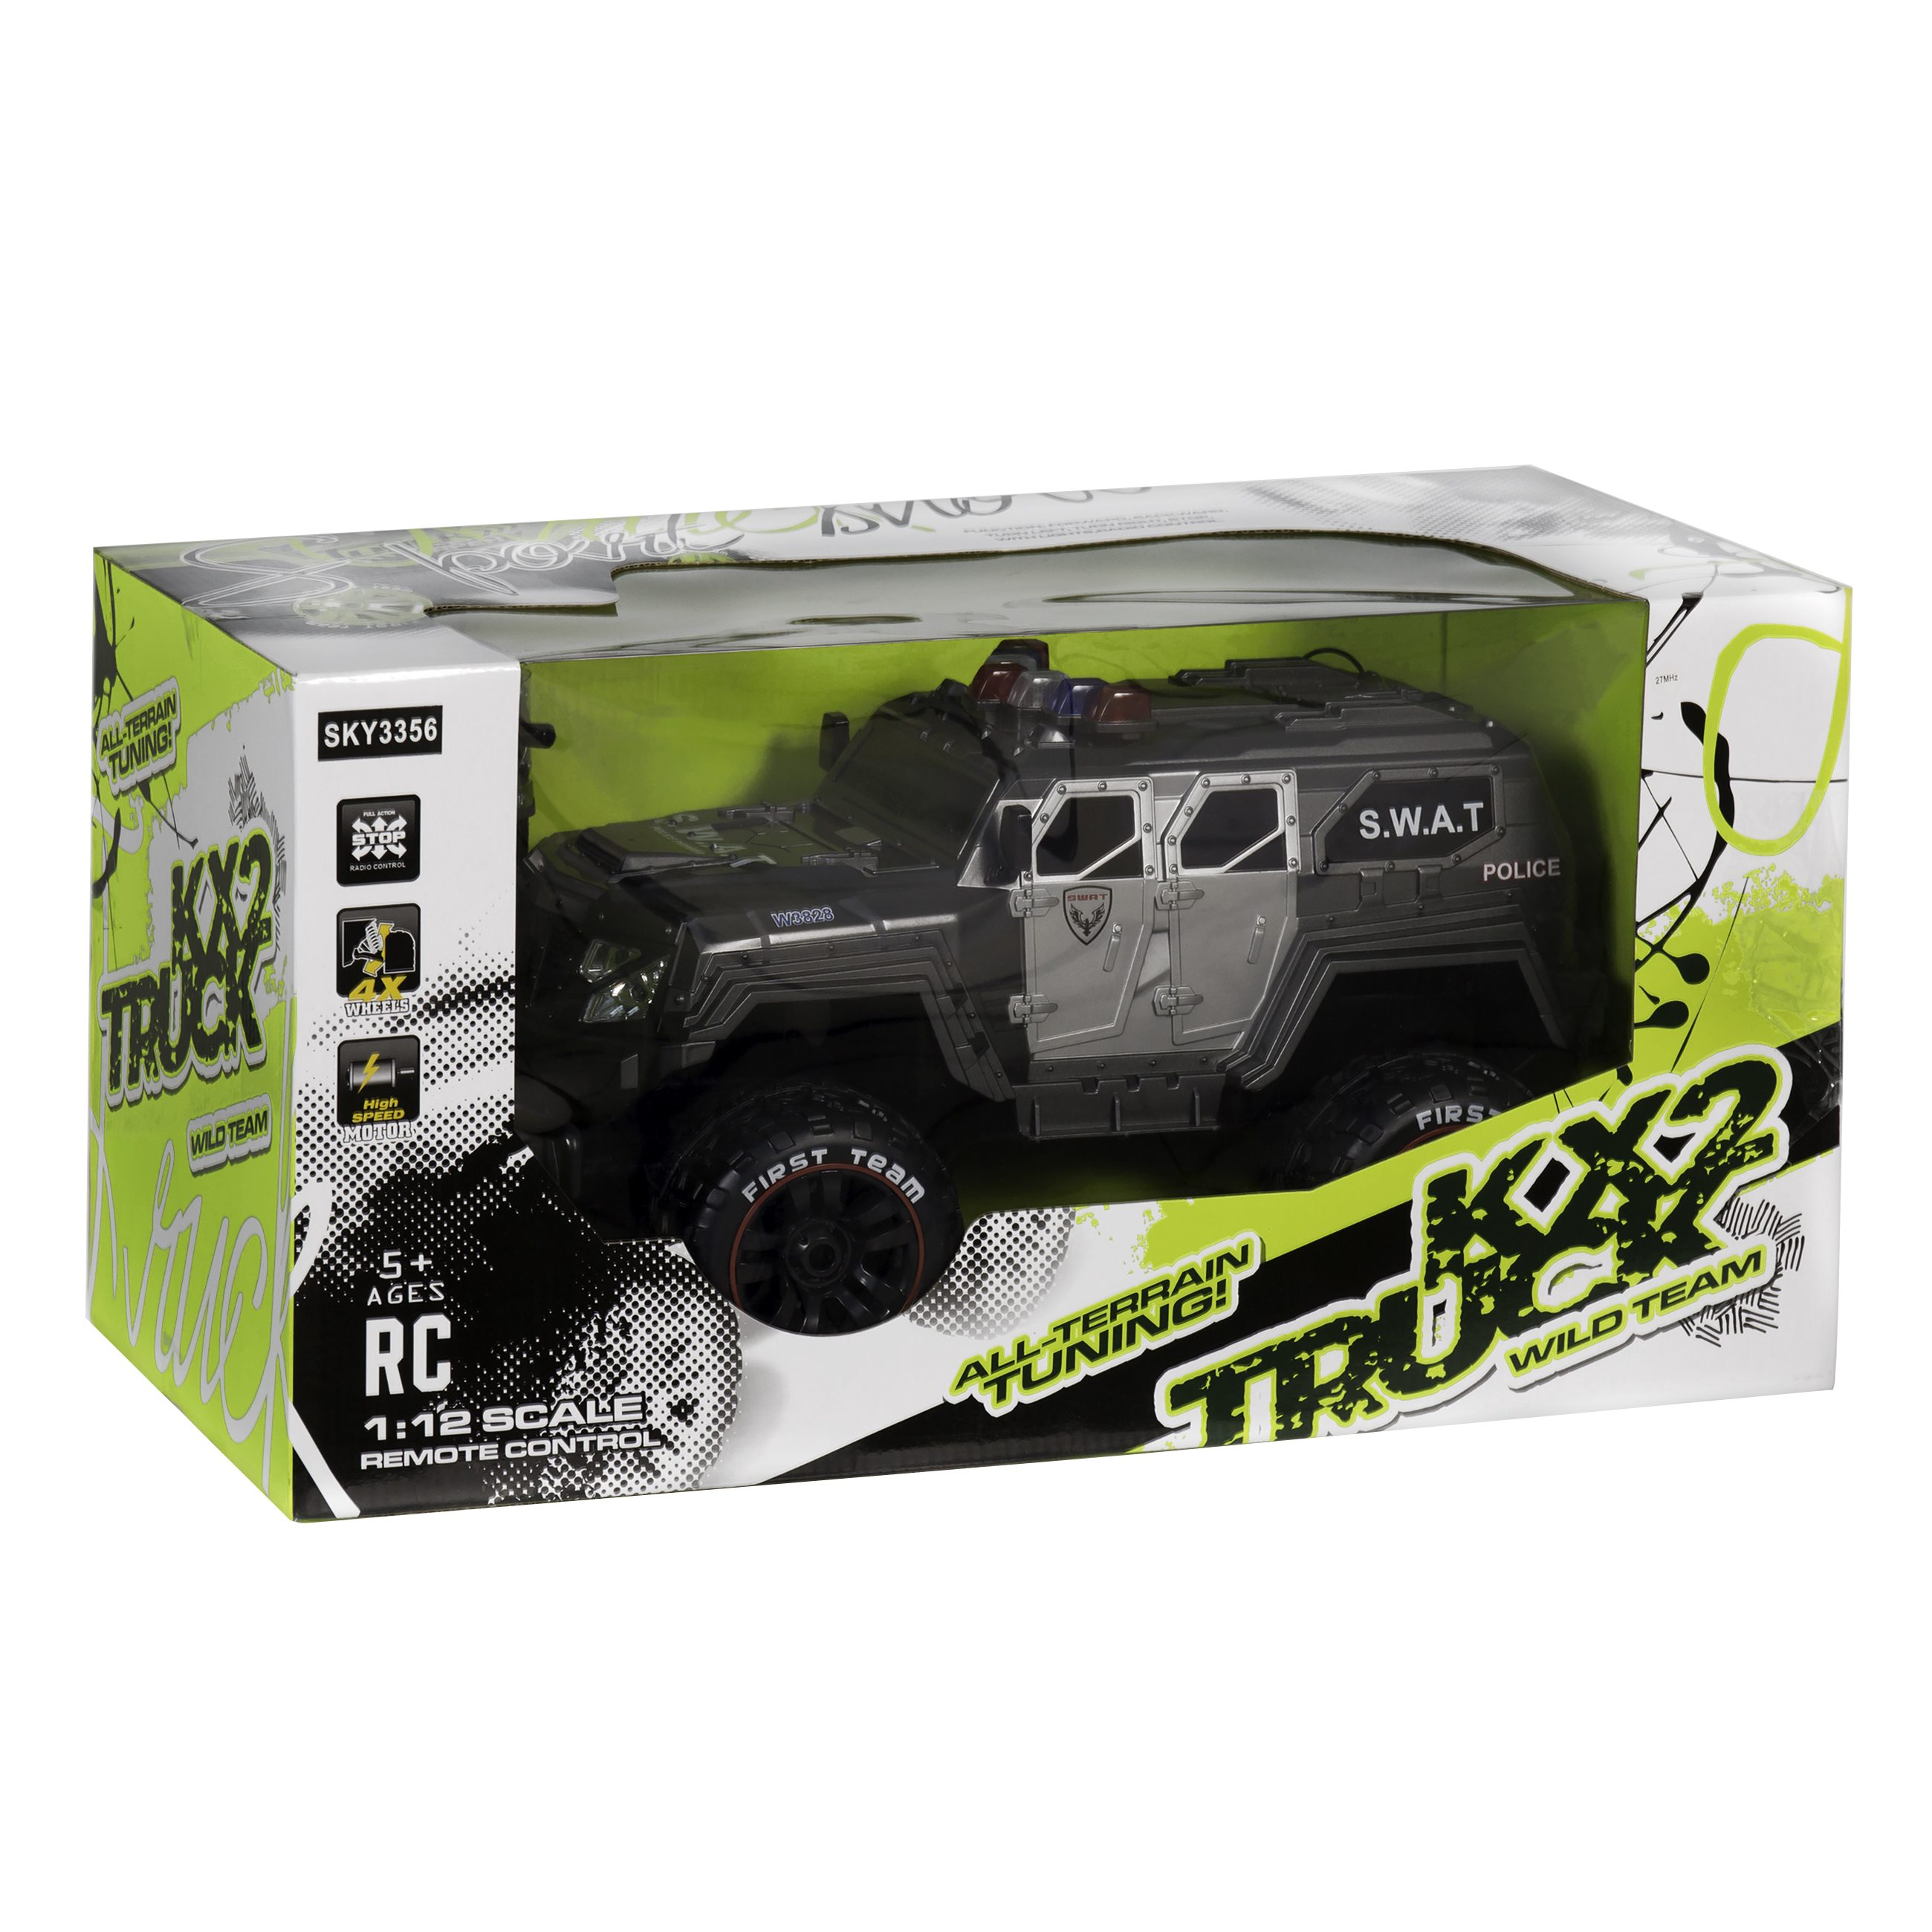 Best Choice Products 1/12 Scale 27Mhz Remote Control Police SWAT Truck RC  Car w/ 12 5MPH Max Speed, Rechargeable Battery, USB Charger - Gray